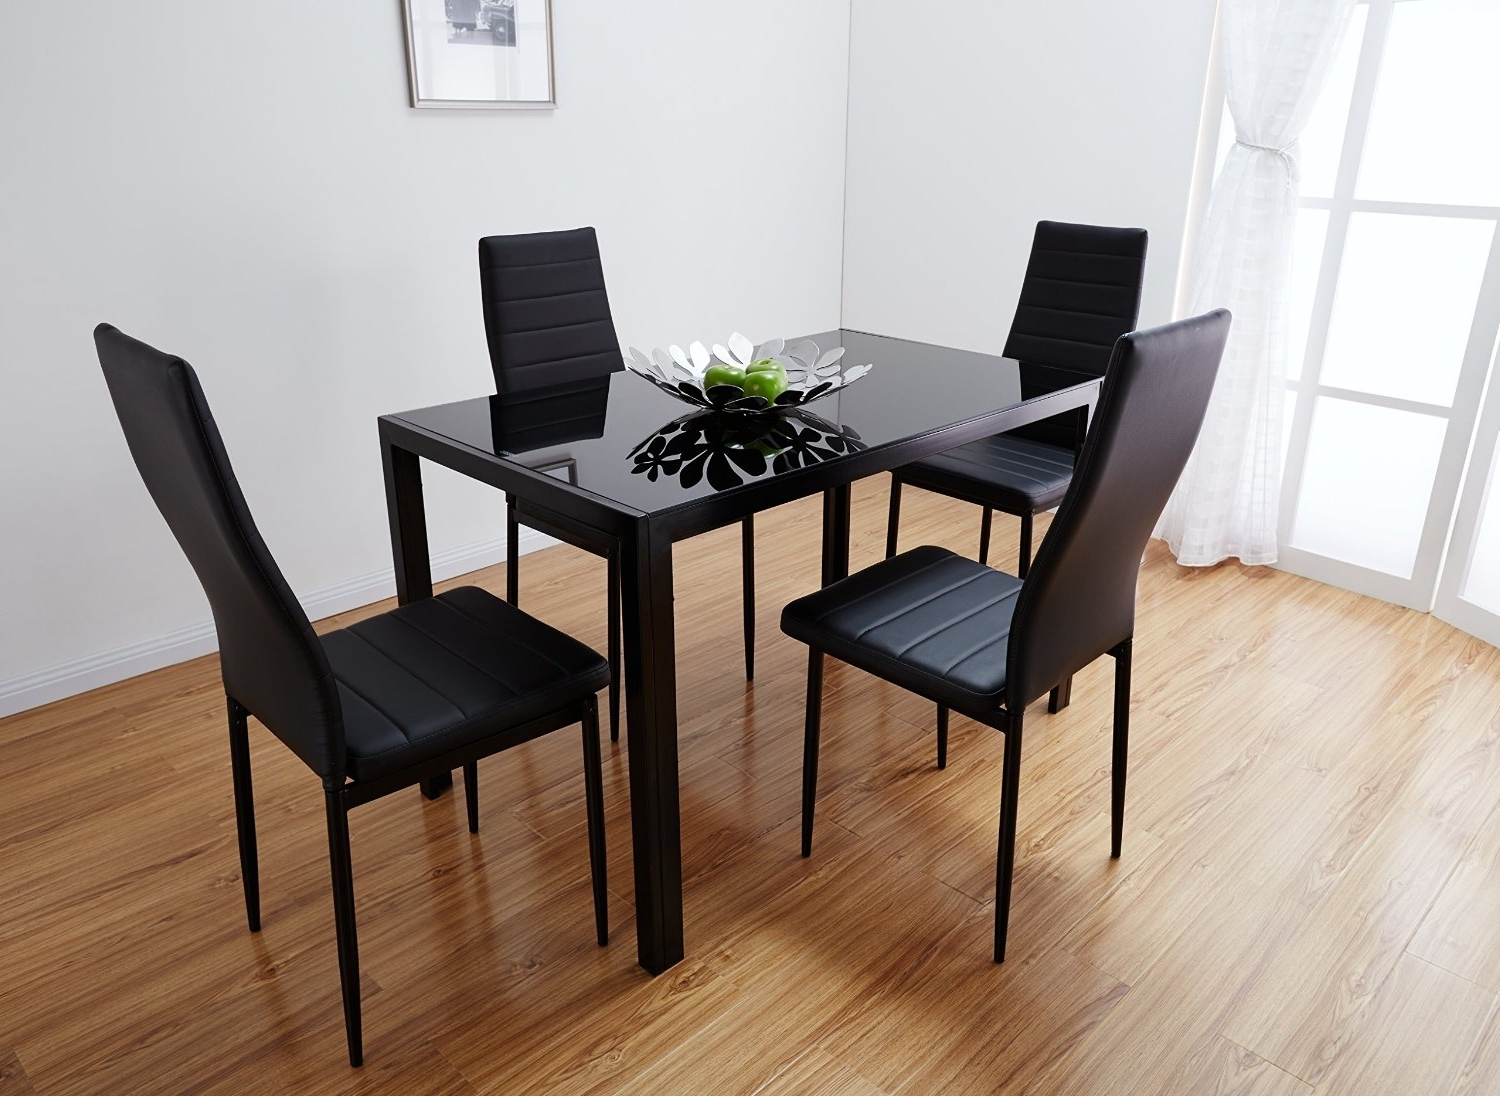 Preferred Glass Top Oak Dining Tables For Dining Room Contemporary Glass Top Dining Table Oak Dining Room (View 21 of 25)